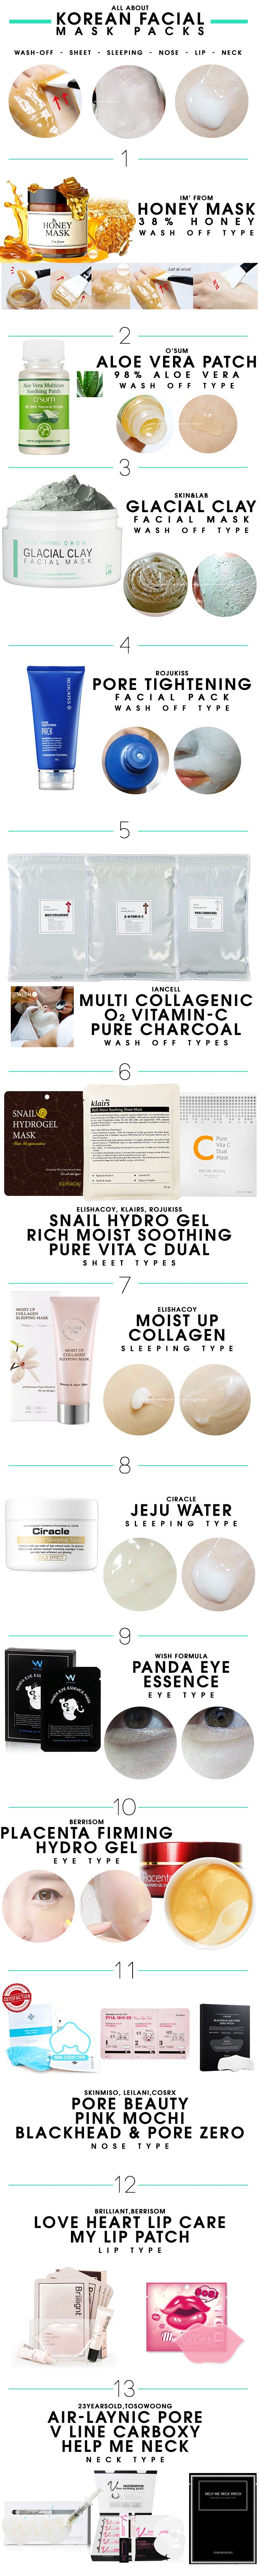 All About Korean Facial Mask Packs From Washoff To Sleeping Packs And  More! Korean Makeupkorean Beautyasian Beautyhow To Apply